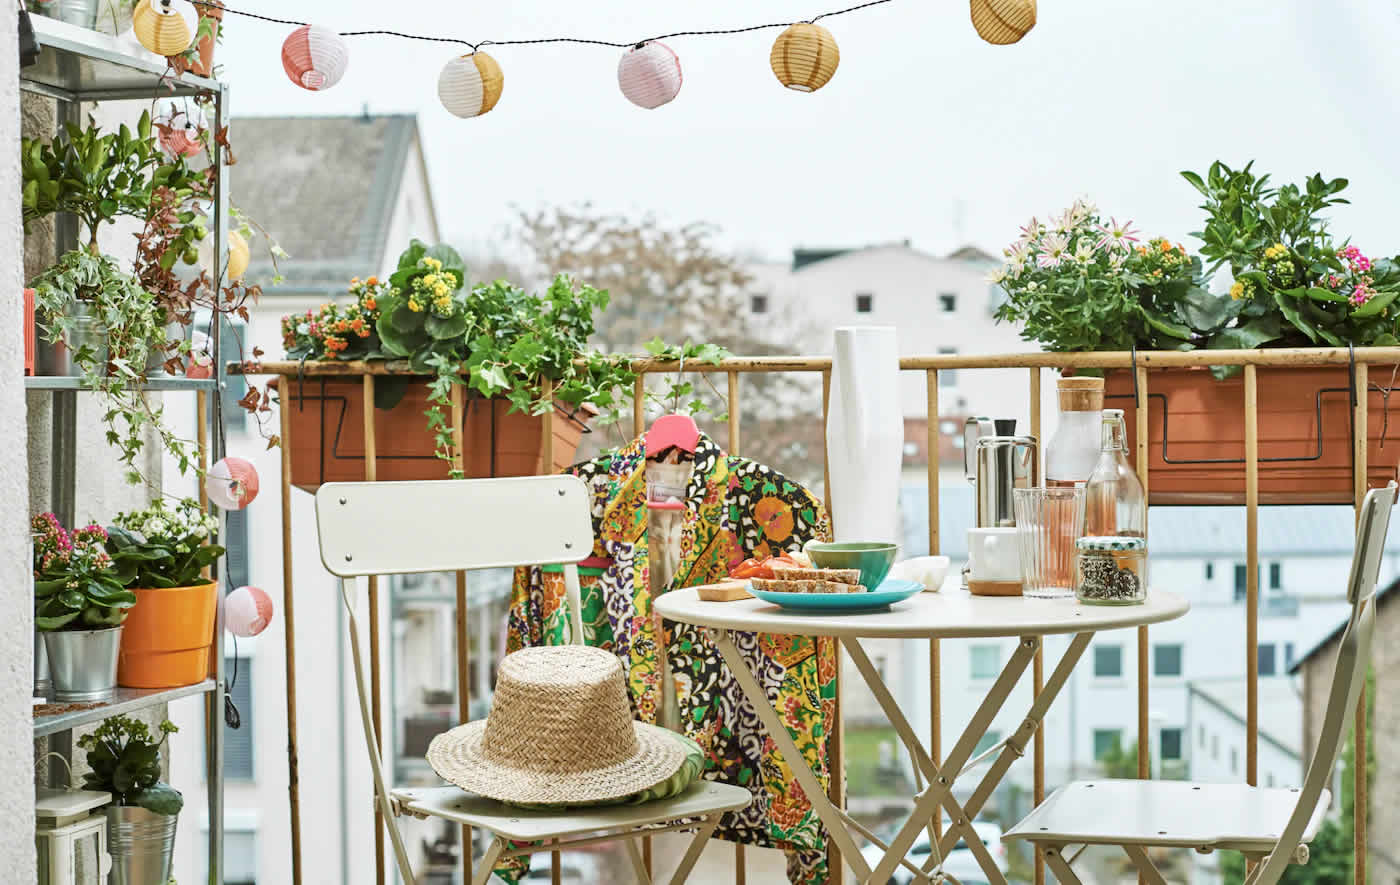 IKEA Ideas - Home visit: a balcony to escape the daily grind